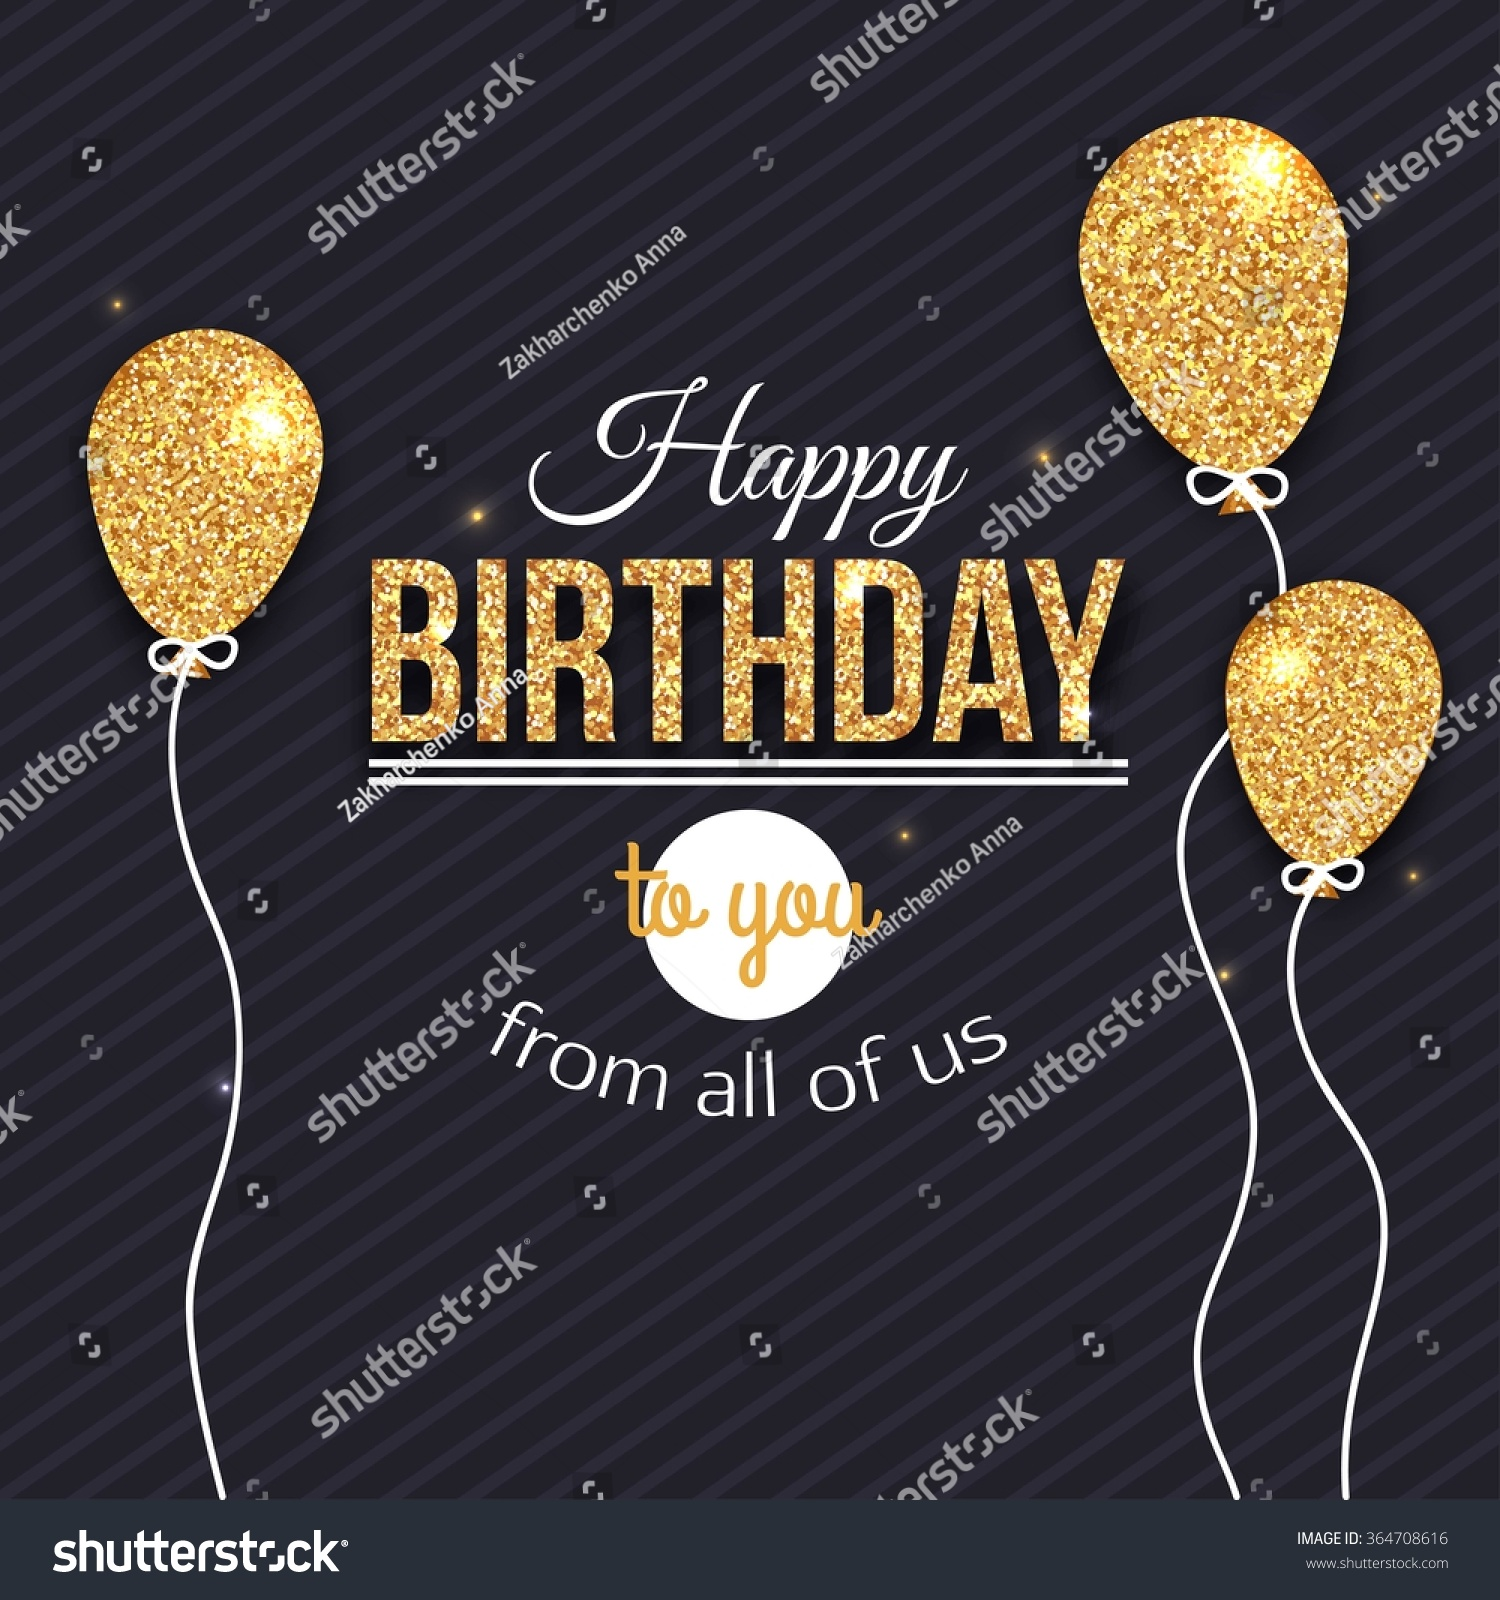 Happy Birthday Card Template Vector Eps Stock Vector (2018 ...